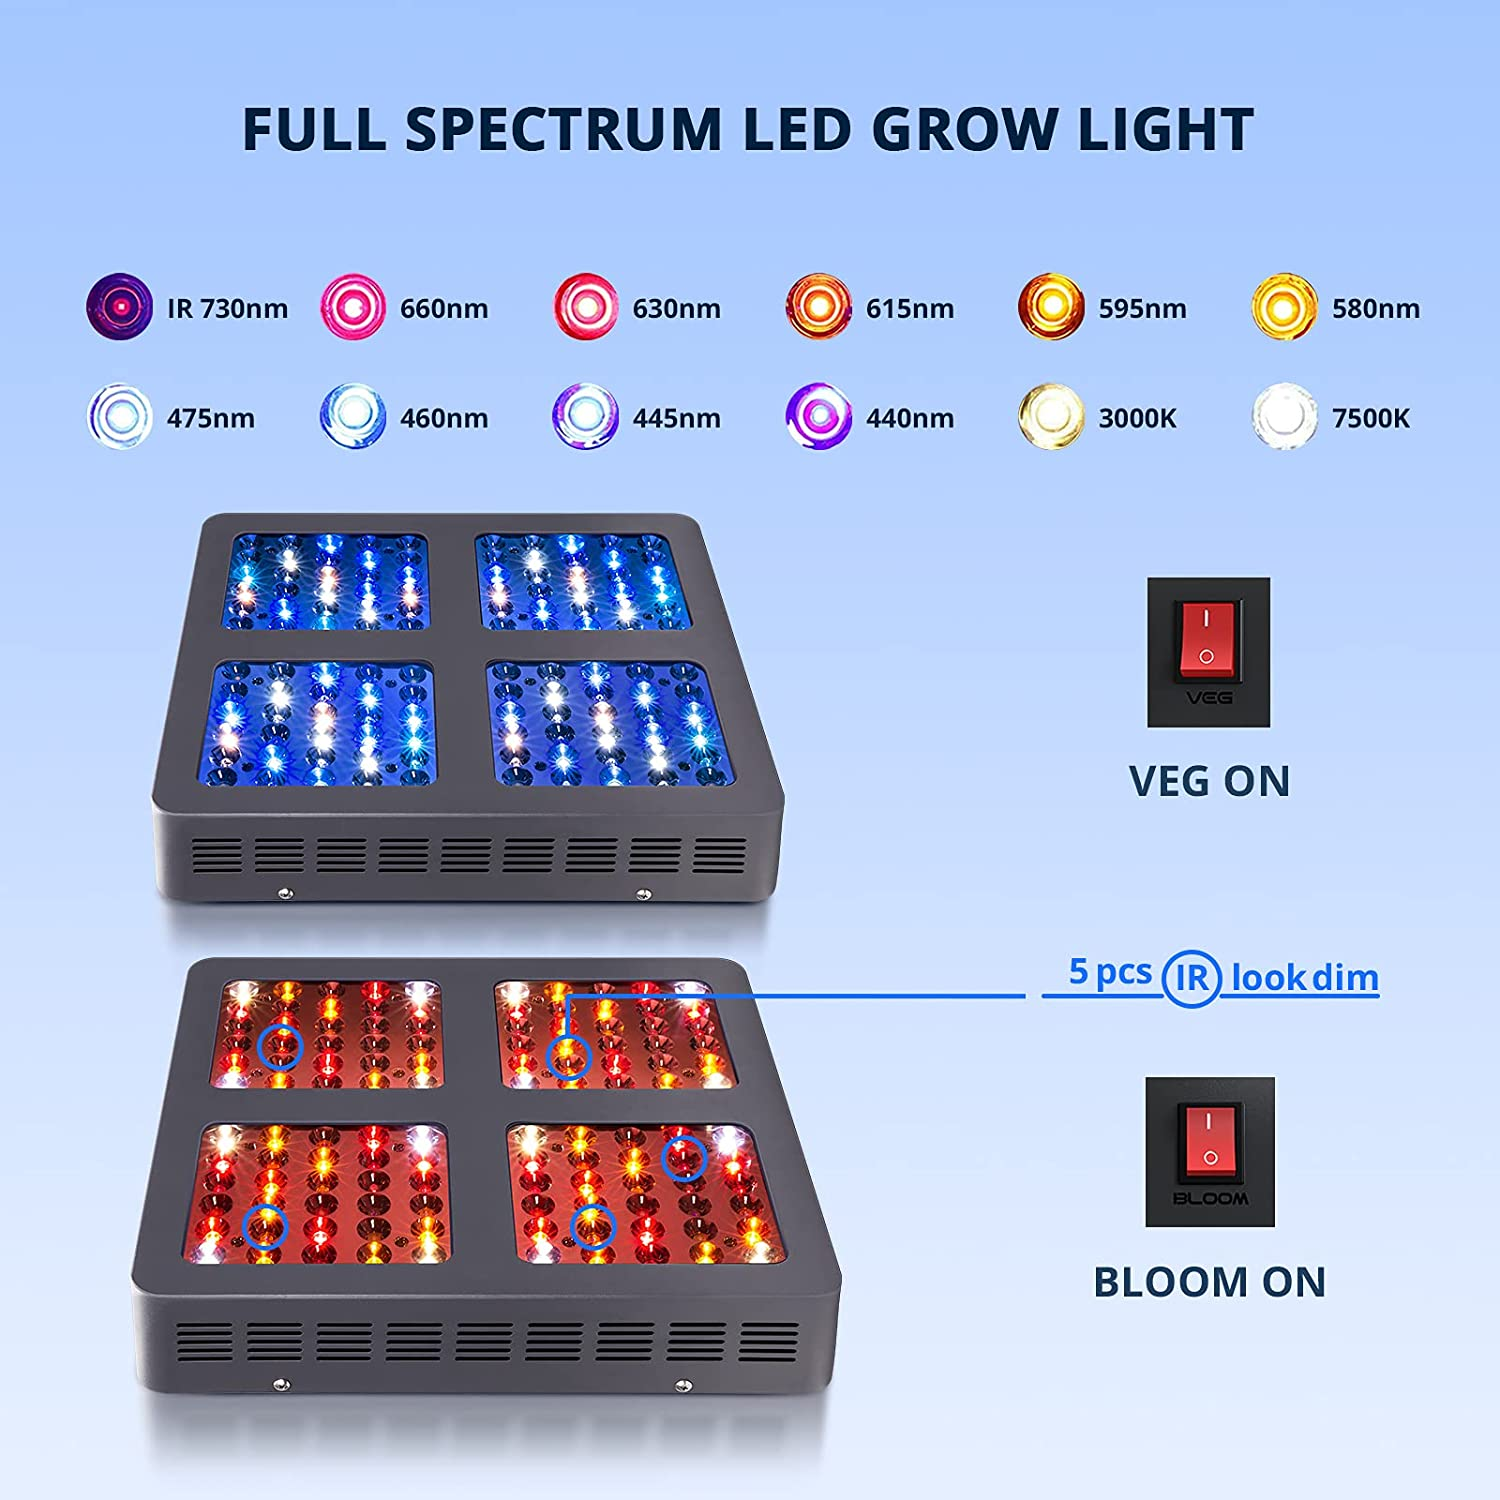 ZFR GROW 600W LED Grow Light,with Daisy Chain,Veg and Bloom Switches, Full Spectrum Plant Growing Lights for Indoor Plants V enlarge